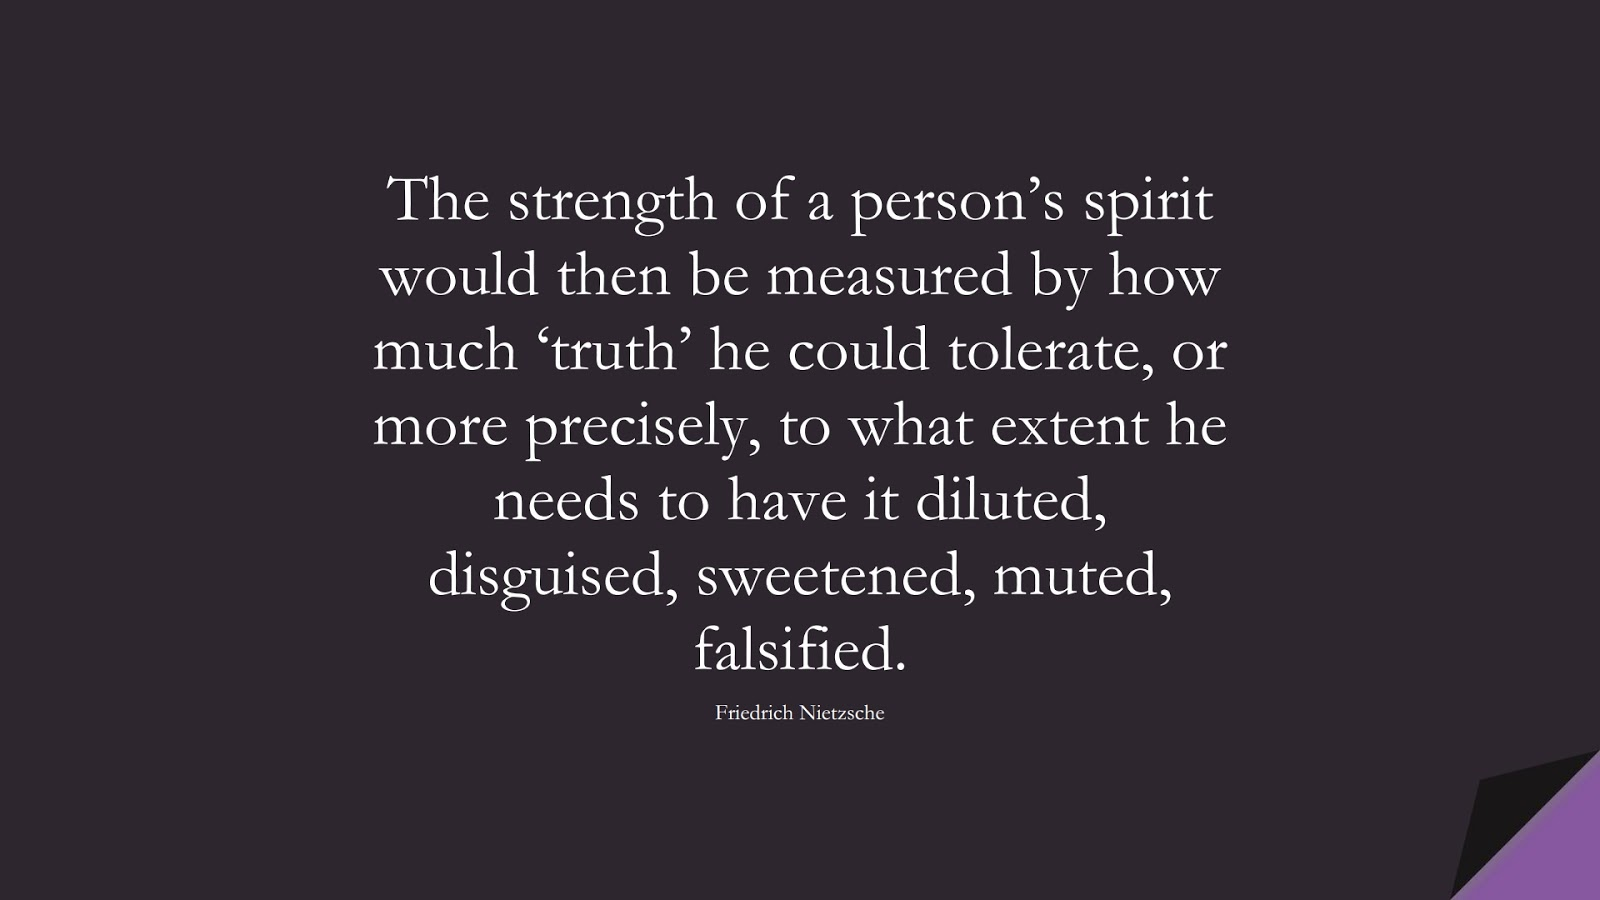 The strength of a person's spirit would then be measured by how much 'truth' he could tolerate, or more precisely, to what extent he needs to have it diluted, disguised, sweetened, muted, falsified. (Friedrich Nietzsche);  #BeingStrongQuotes